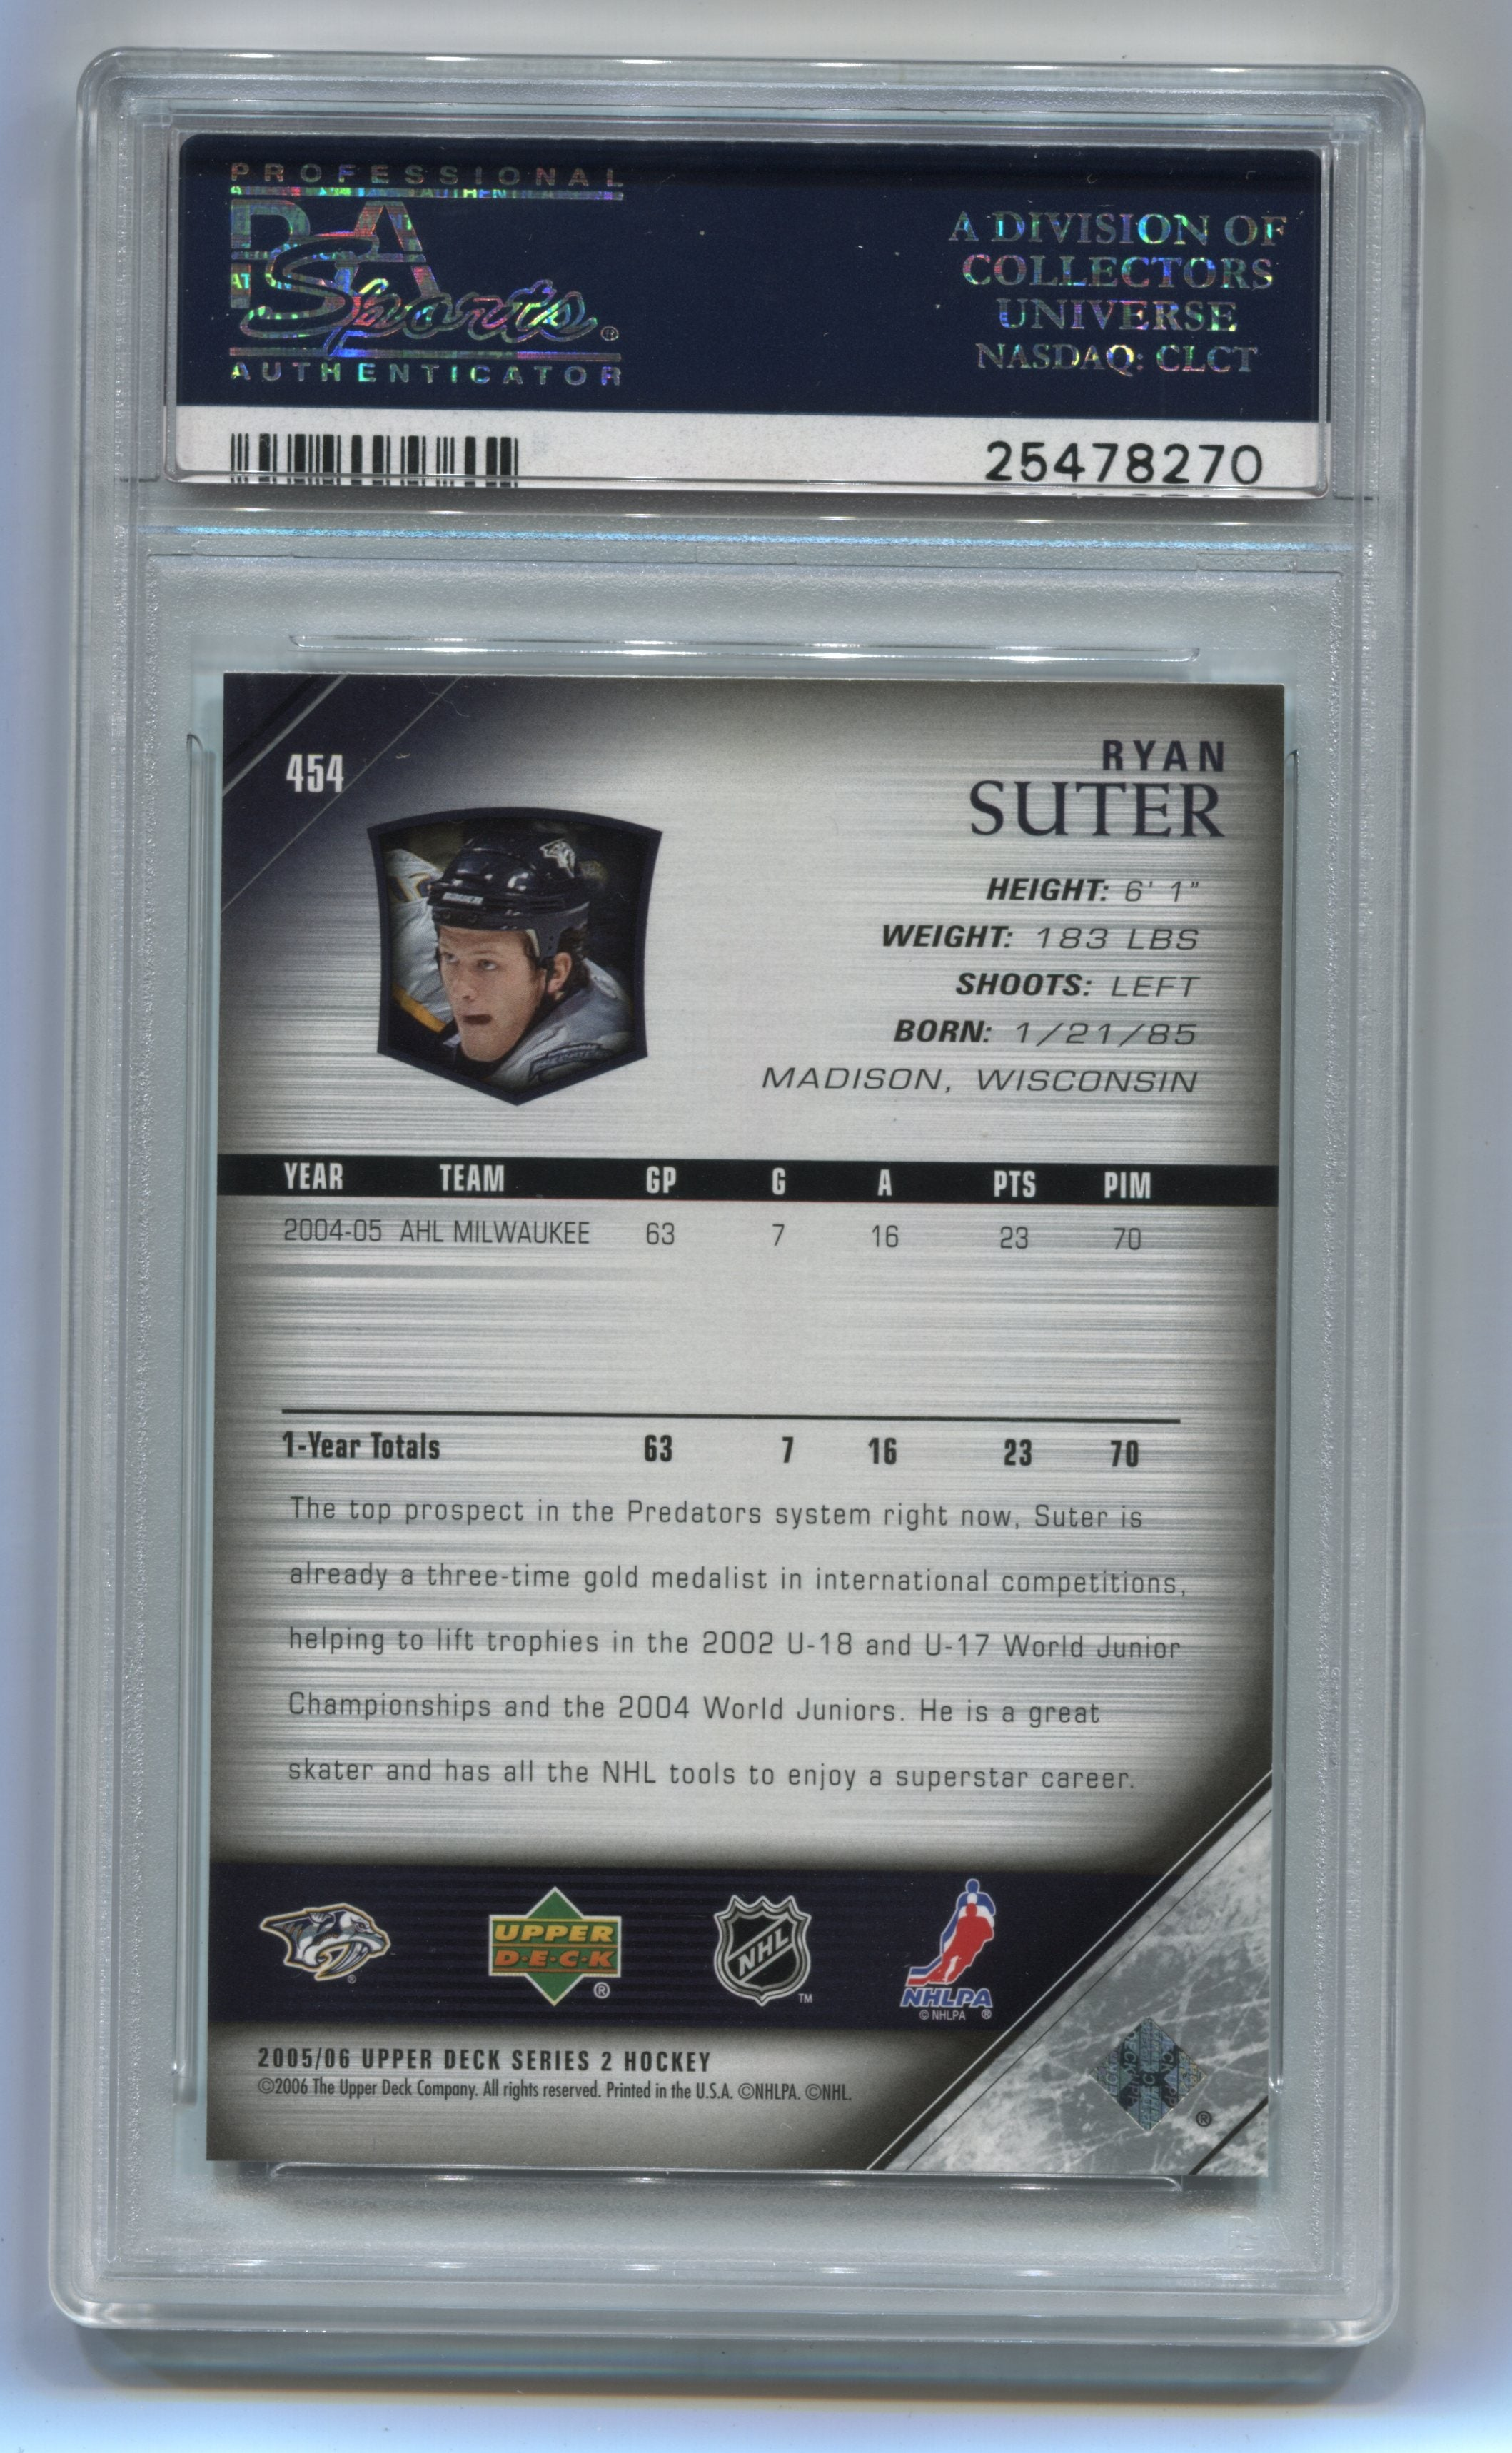 2005-06 Upper Deck #454 Ryan Suter PSA 10 (Rookie) | Eastridge Sports Cards